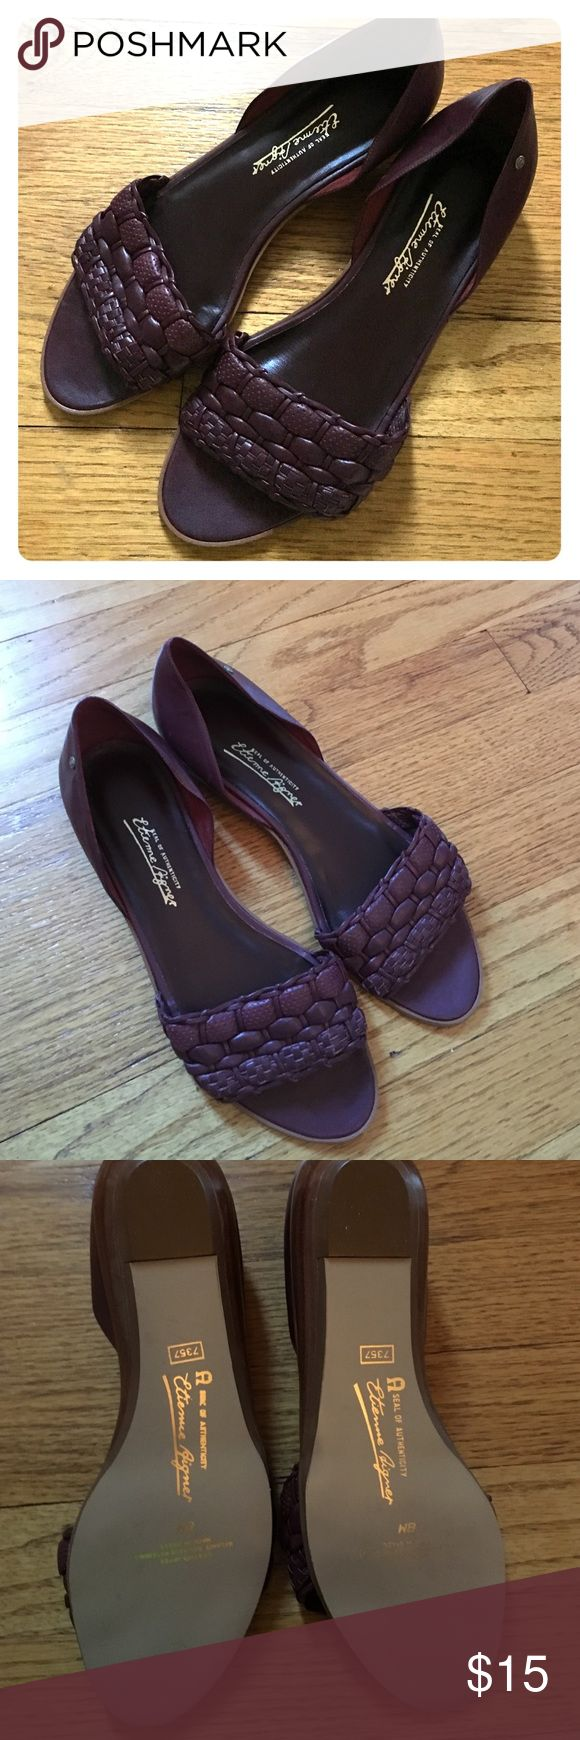 Shoes Etienne Aigner wine flat Sandals These traditional classic Etienne Aigner  wine flat shoes  in like new condition. Authentic! No trades! Etienne Aigner Shoes Flats & Loafers